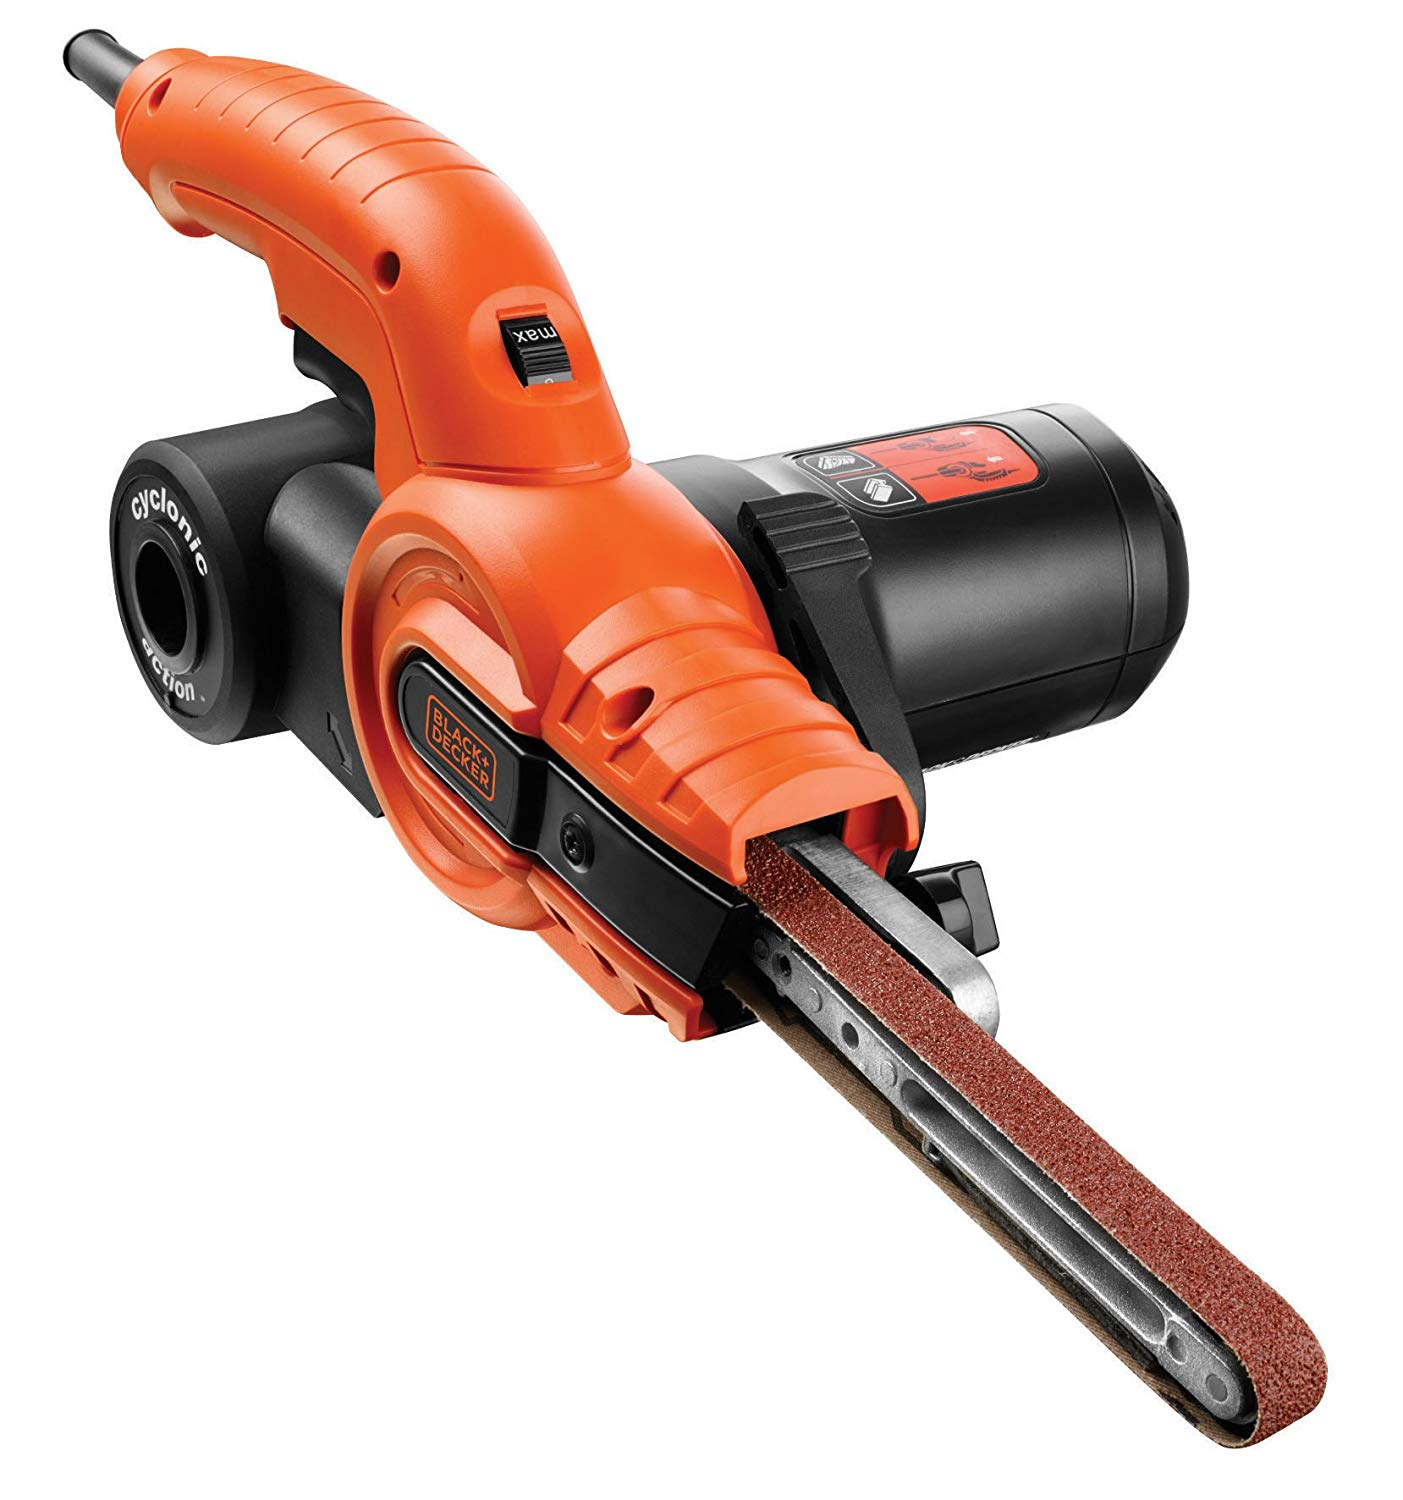 BLACK+DECKER Black + Decker Ka900E Power Sander Power Sanders Black/Orange